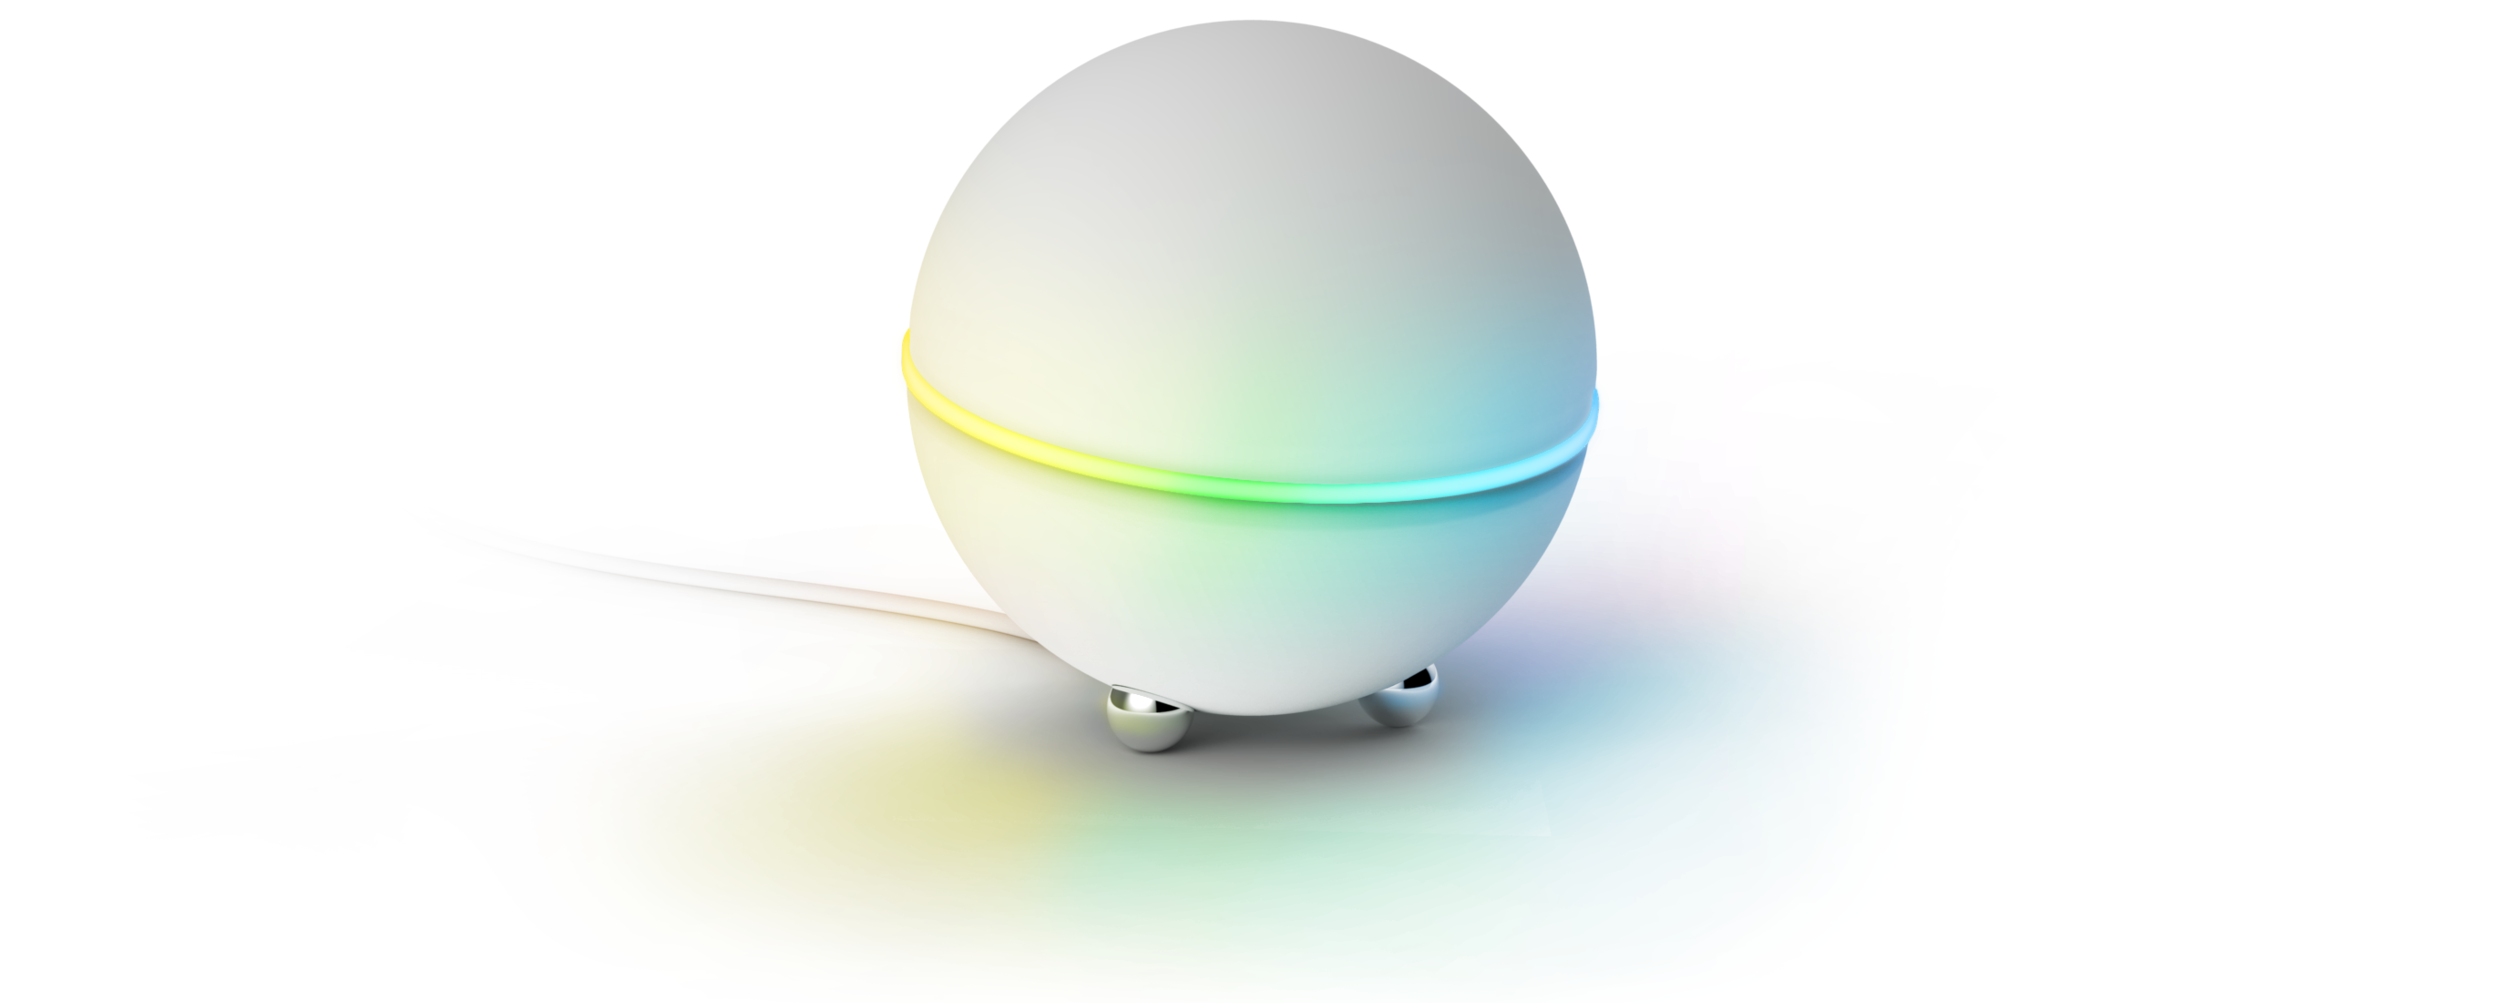 Athom Homey - Give Toon instructions by simply speaking to Homey. With Homey, Toon can even connect to hundreds of thousands of other smart devices. The possibilities are endless.